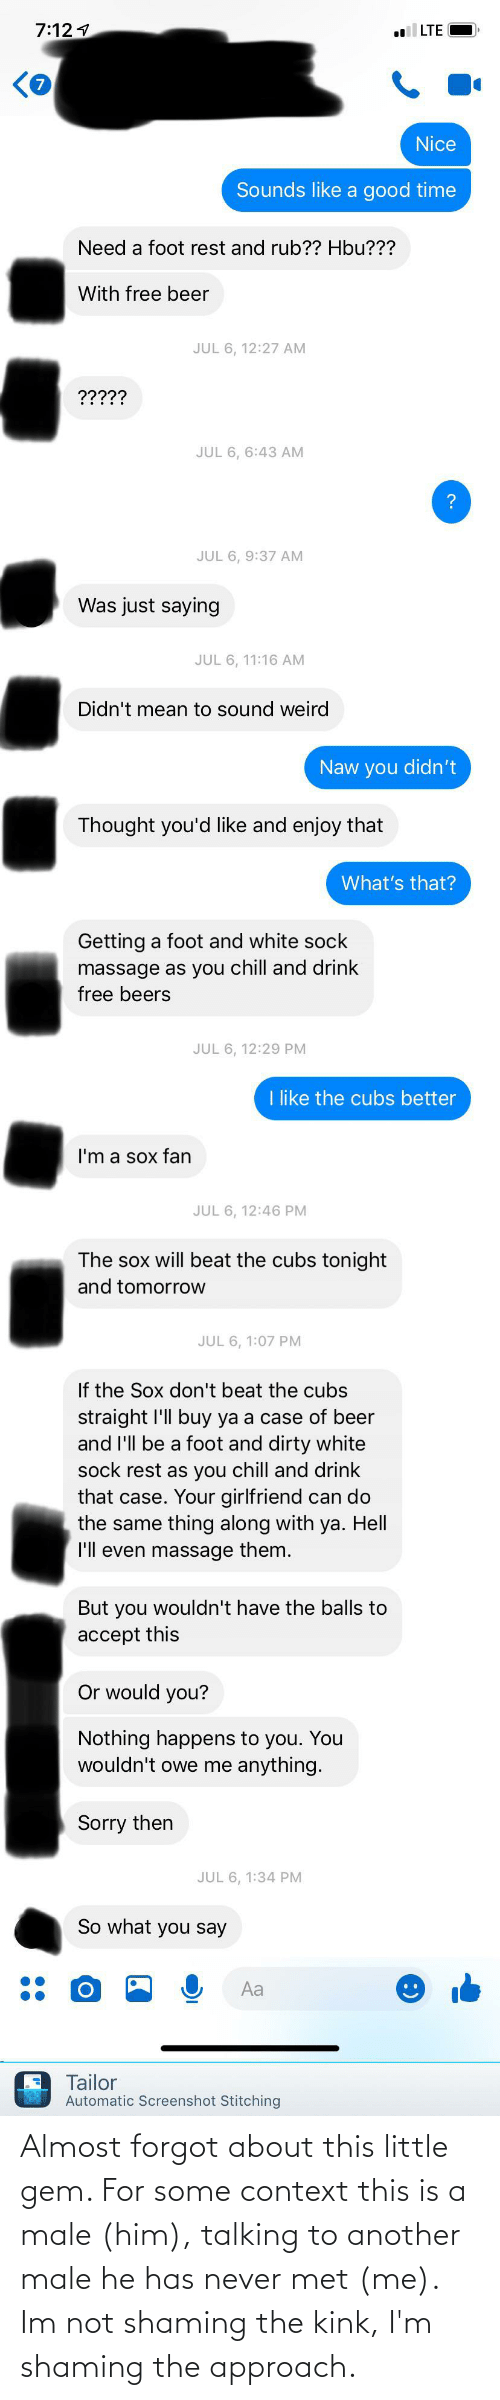 Shaming: Almost forgot about this little gem. For some context this is a male (him), talking to another male he has never met (me). Im not shaming the kink, I'm shaming the approach.